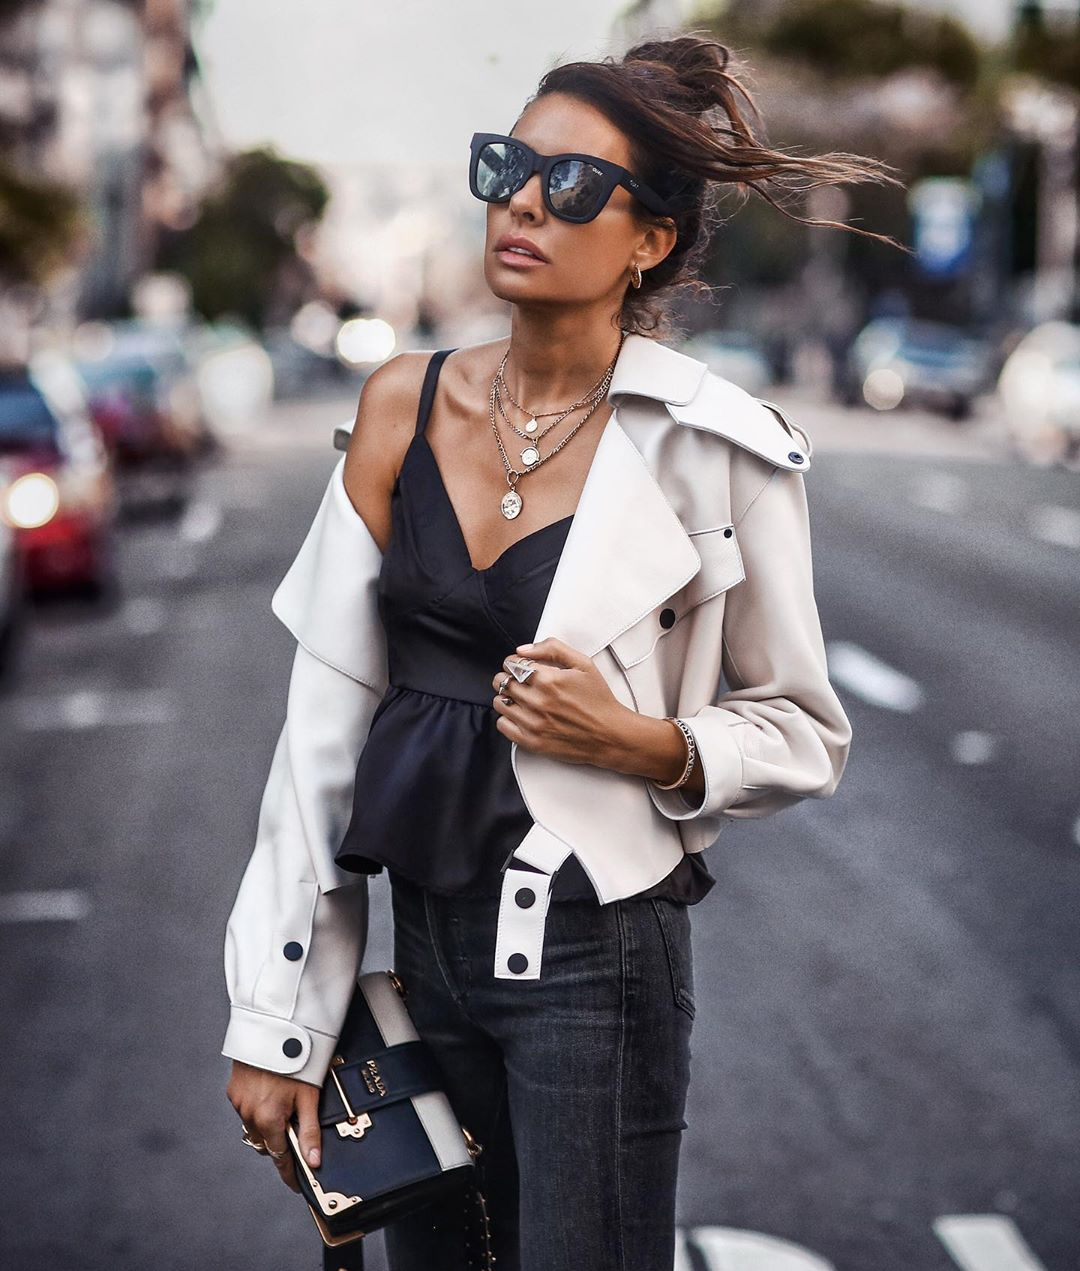 white-leather-jacket-women-black-outfit